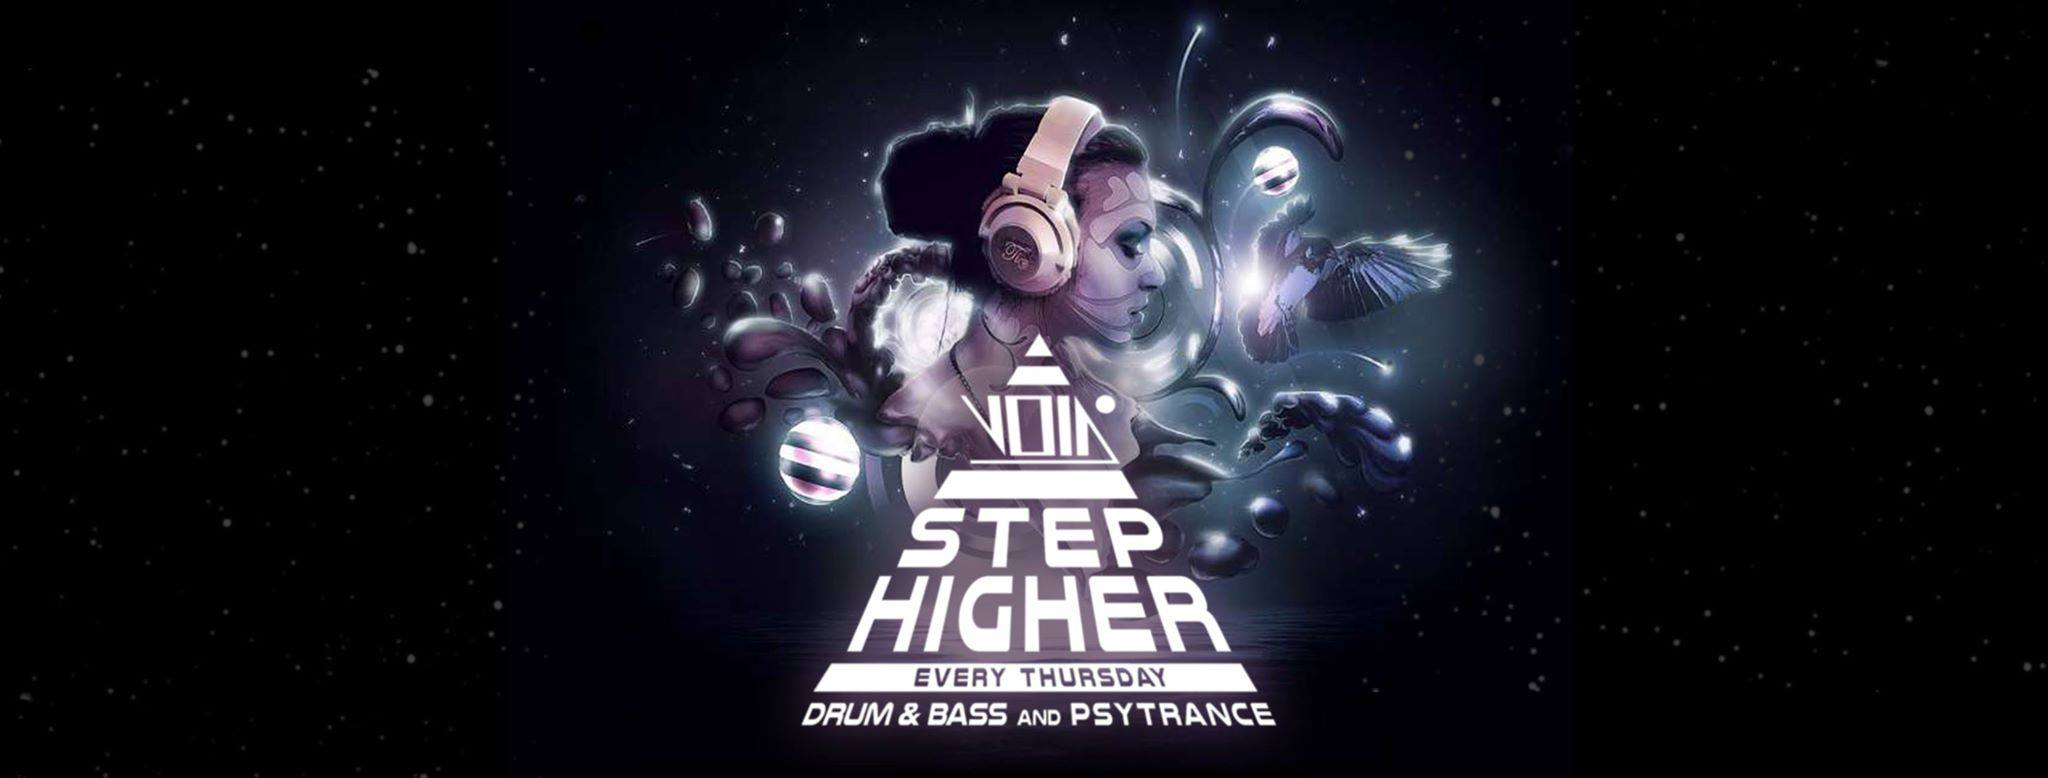 Step higher – Drum & Bass / Psytrance